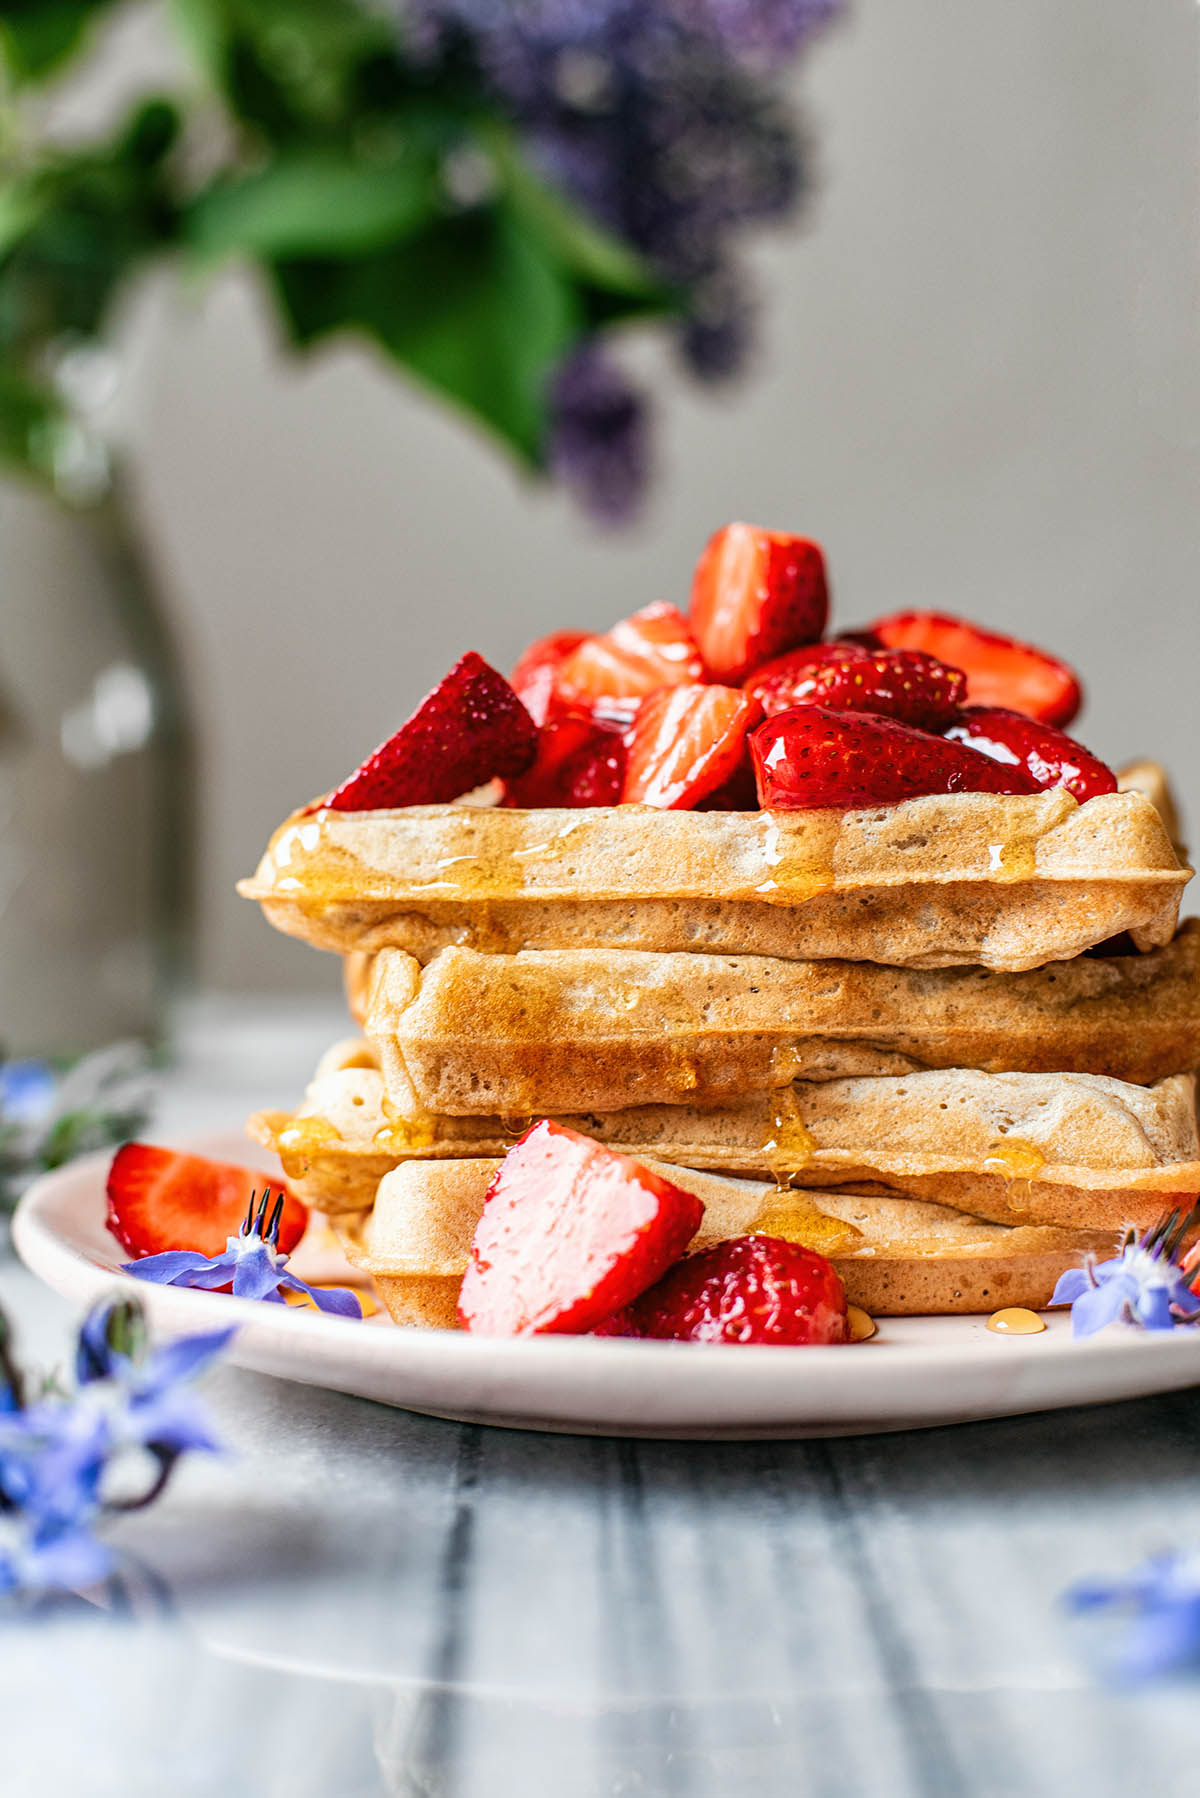 Stack of sourdough waffles topped with strawberries and maple syrup.